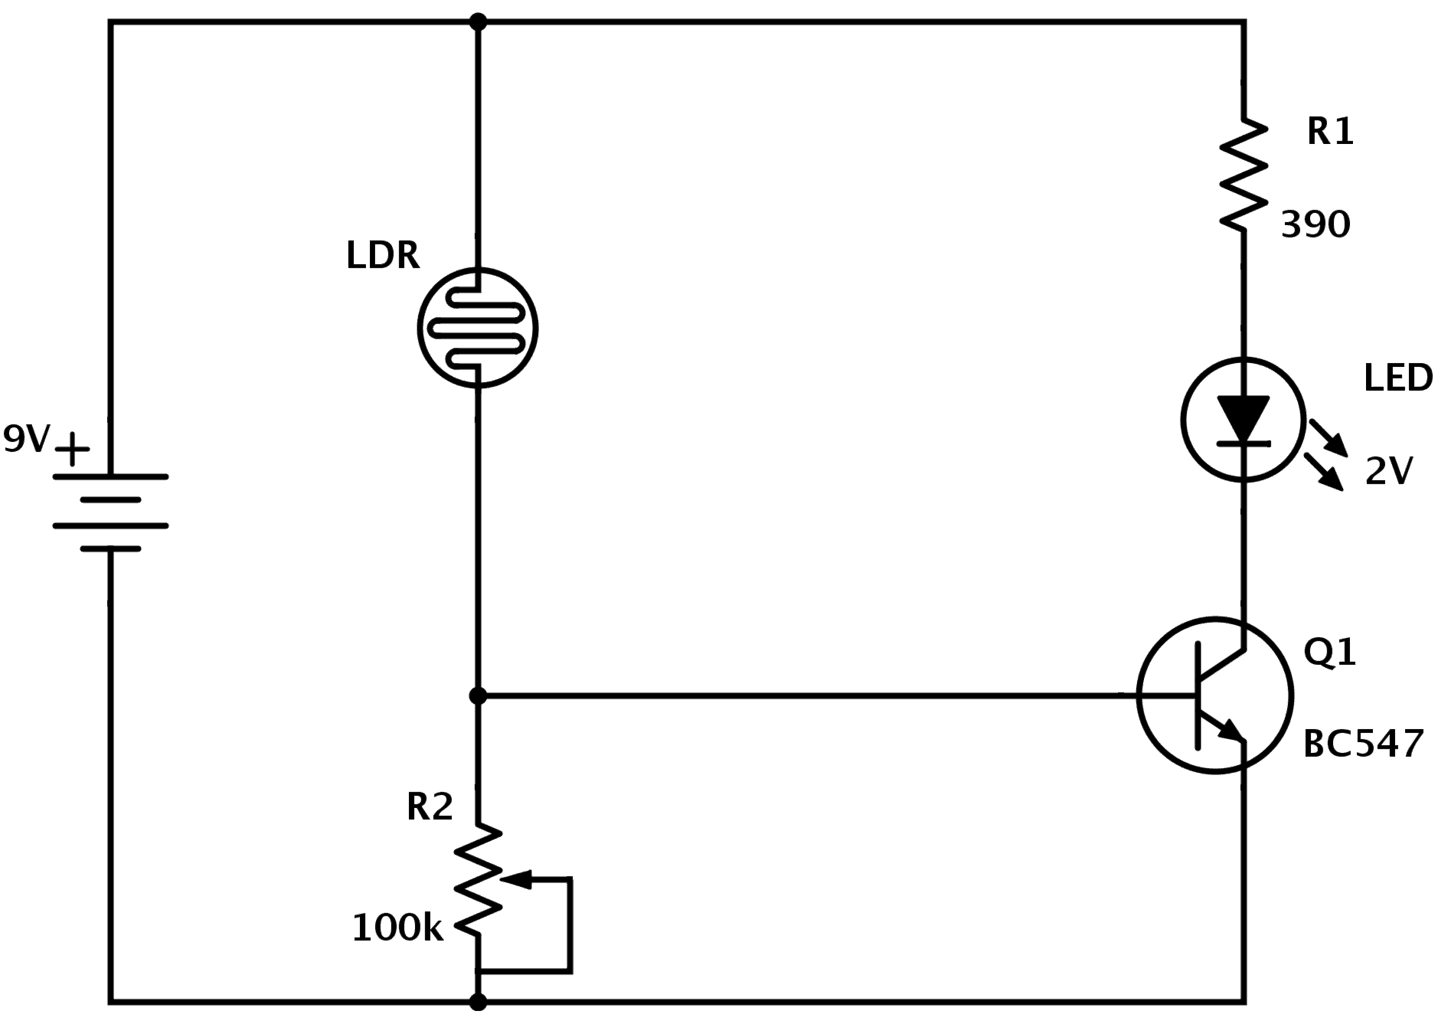 begginers guide to wiring diagrams all wiring diagram Schematic Circuit Diagram